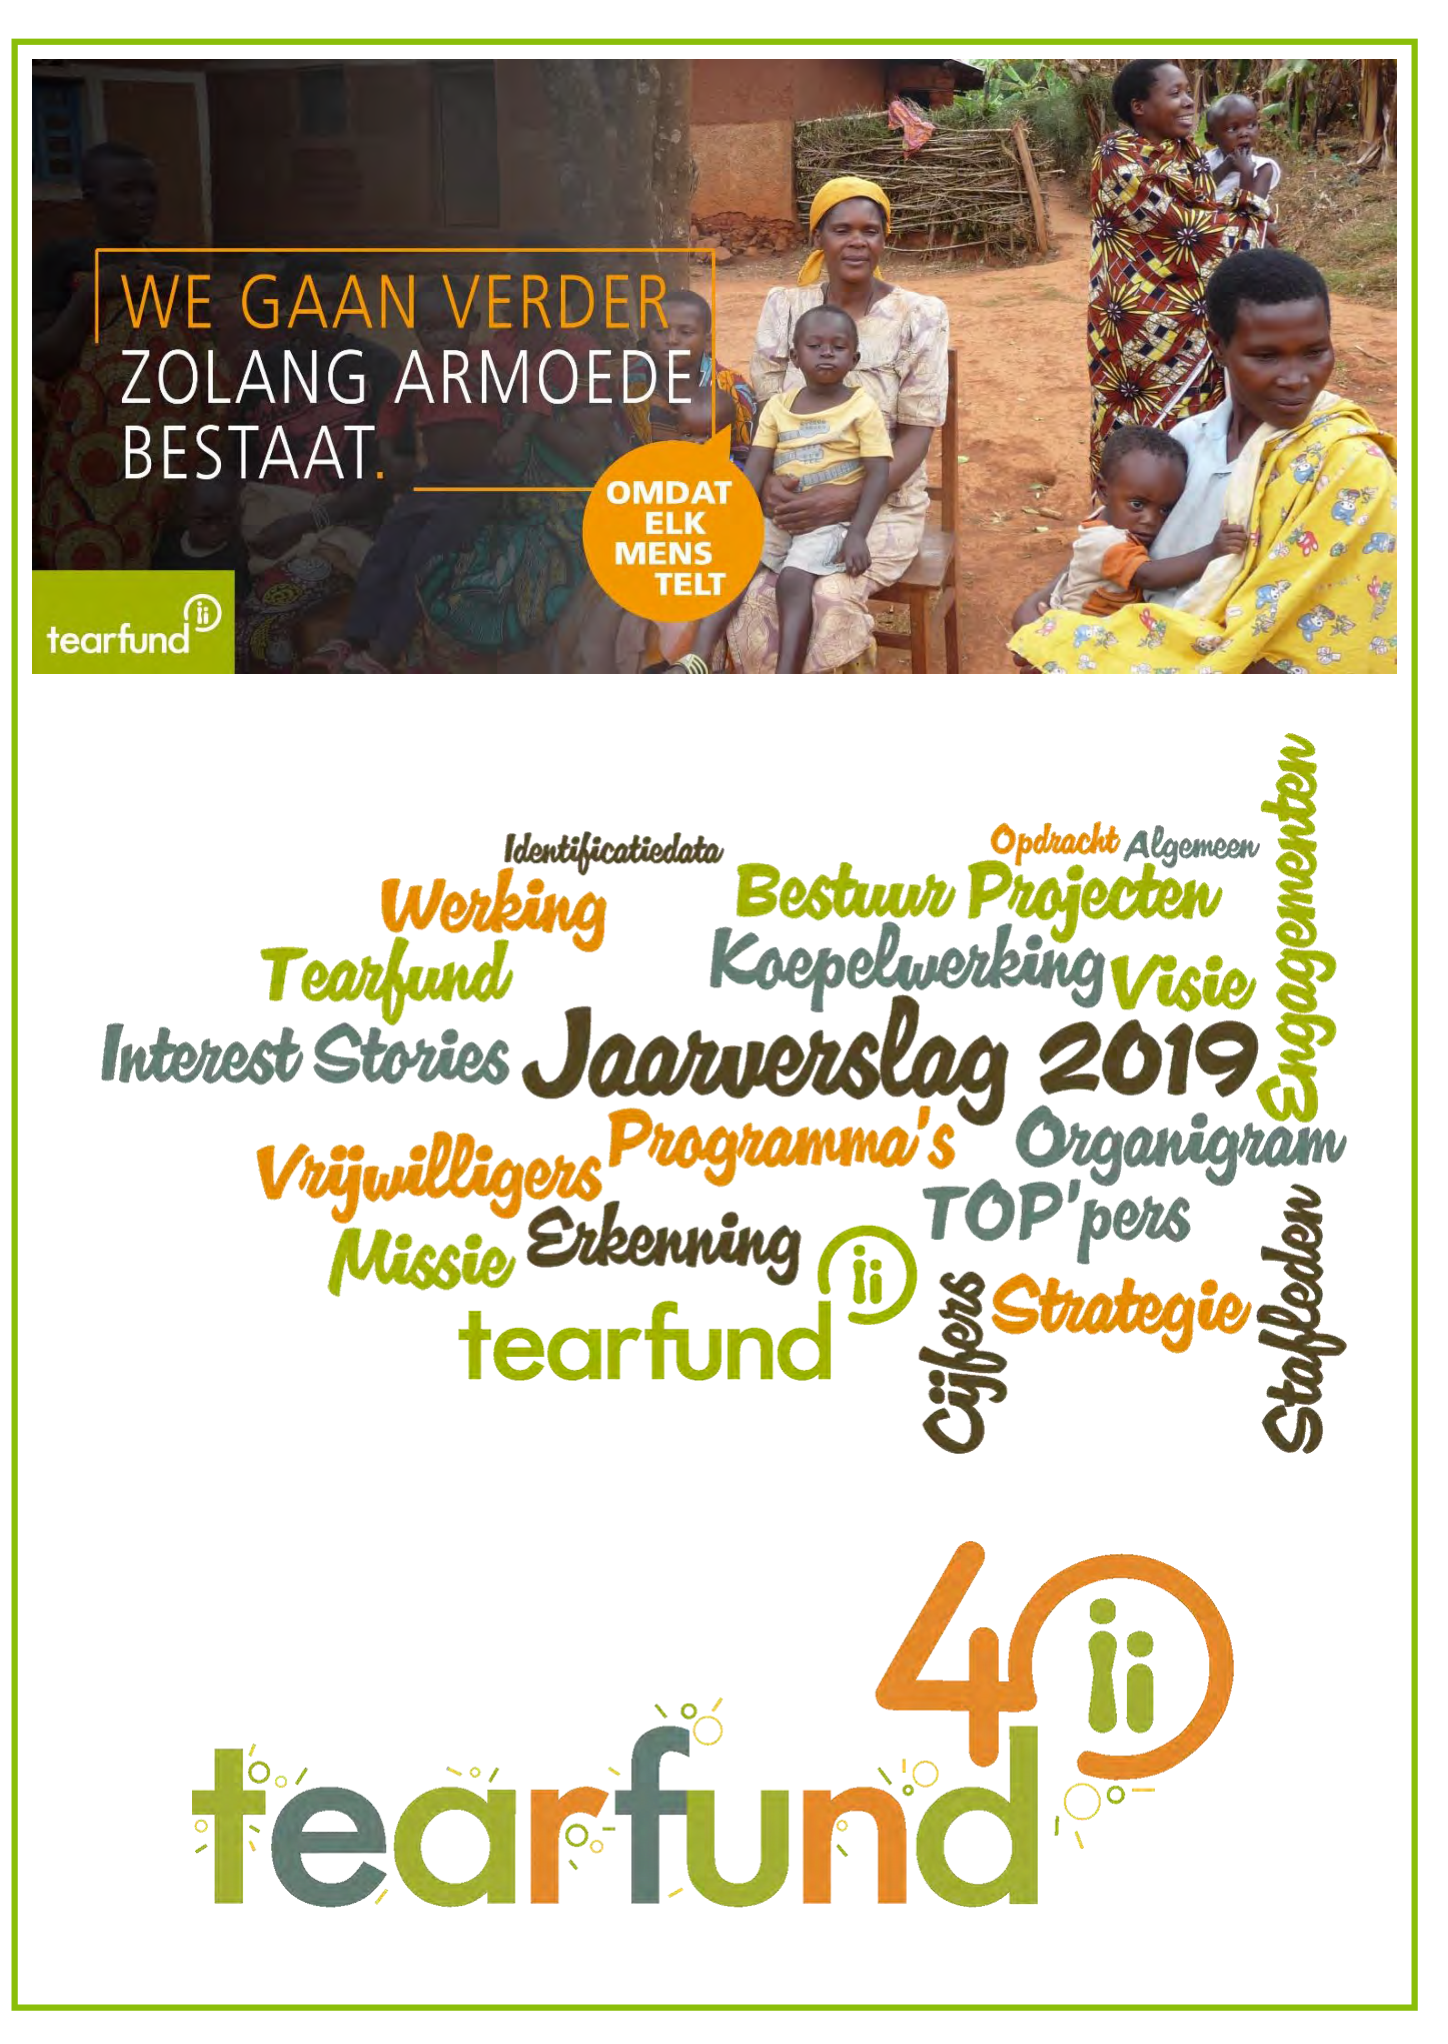 TearfundJaarverslag2019Cover